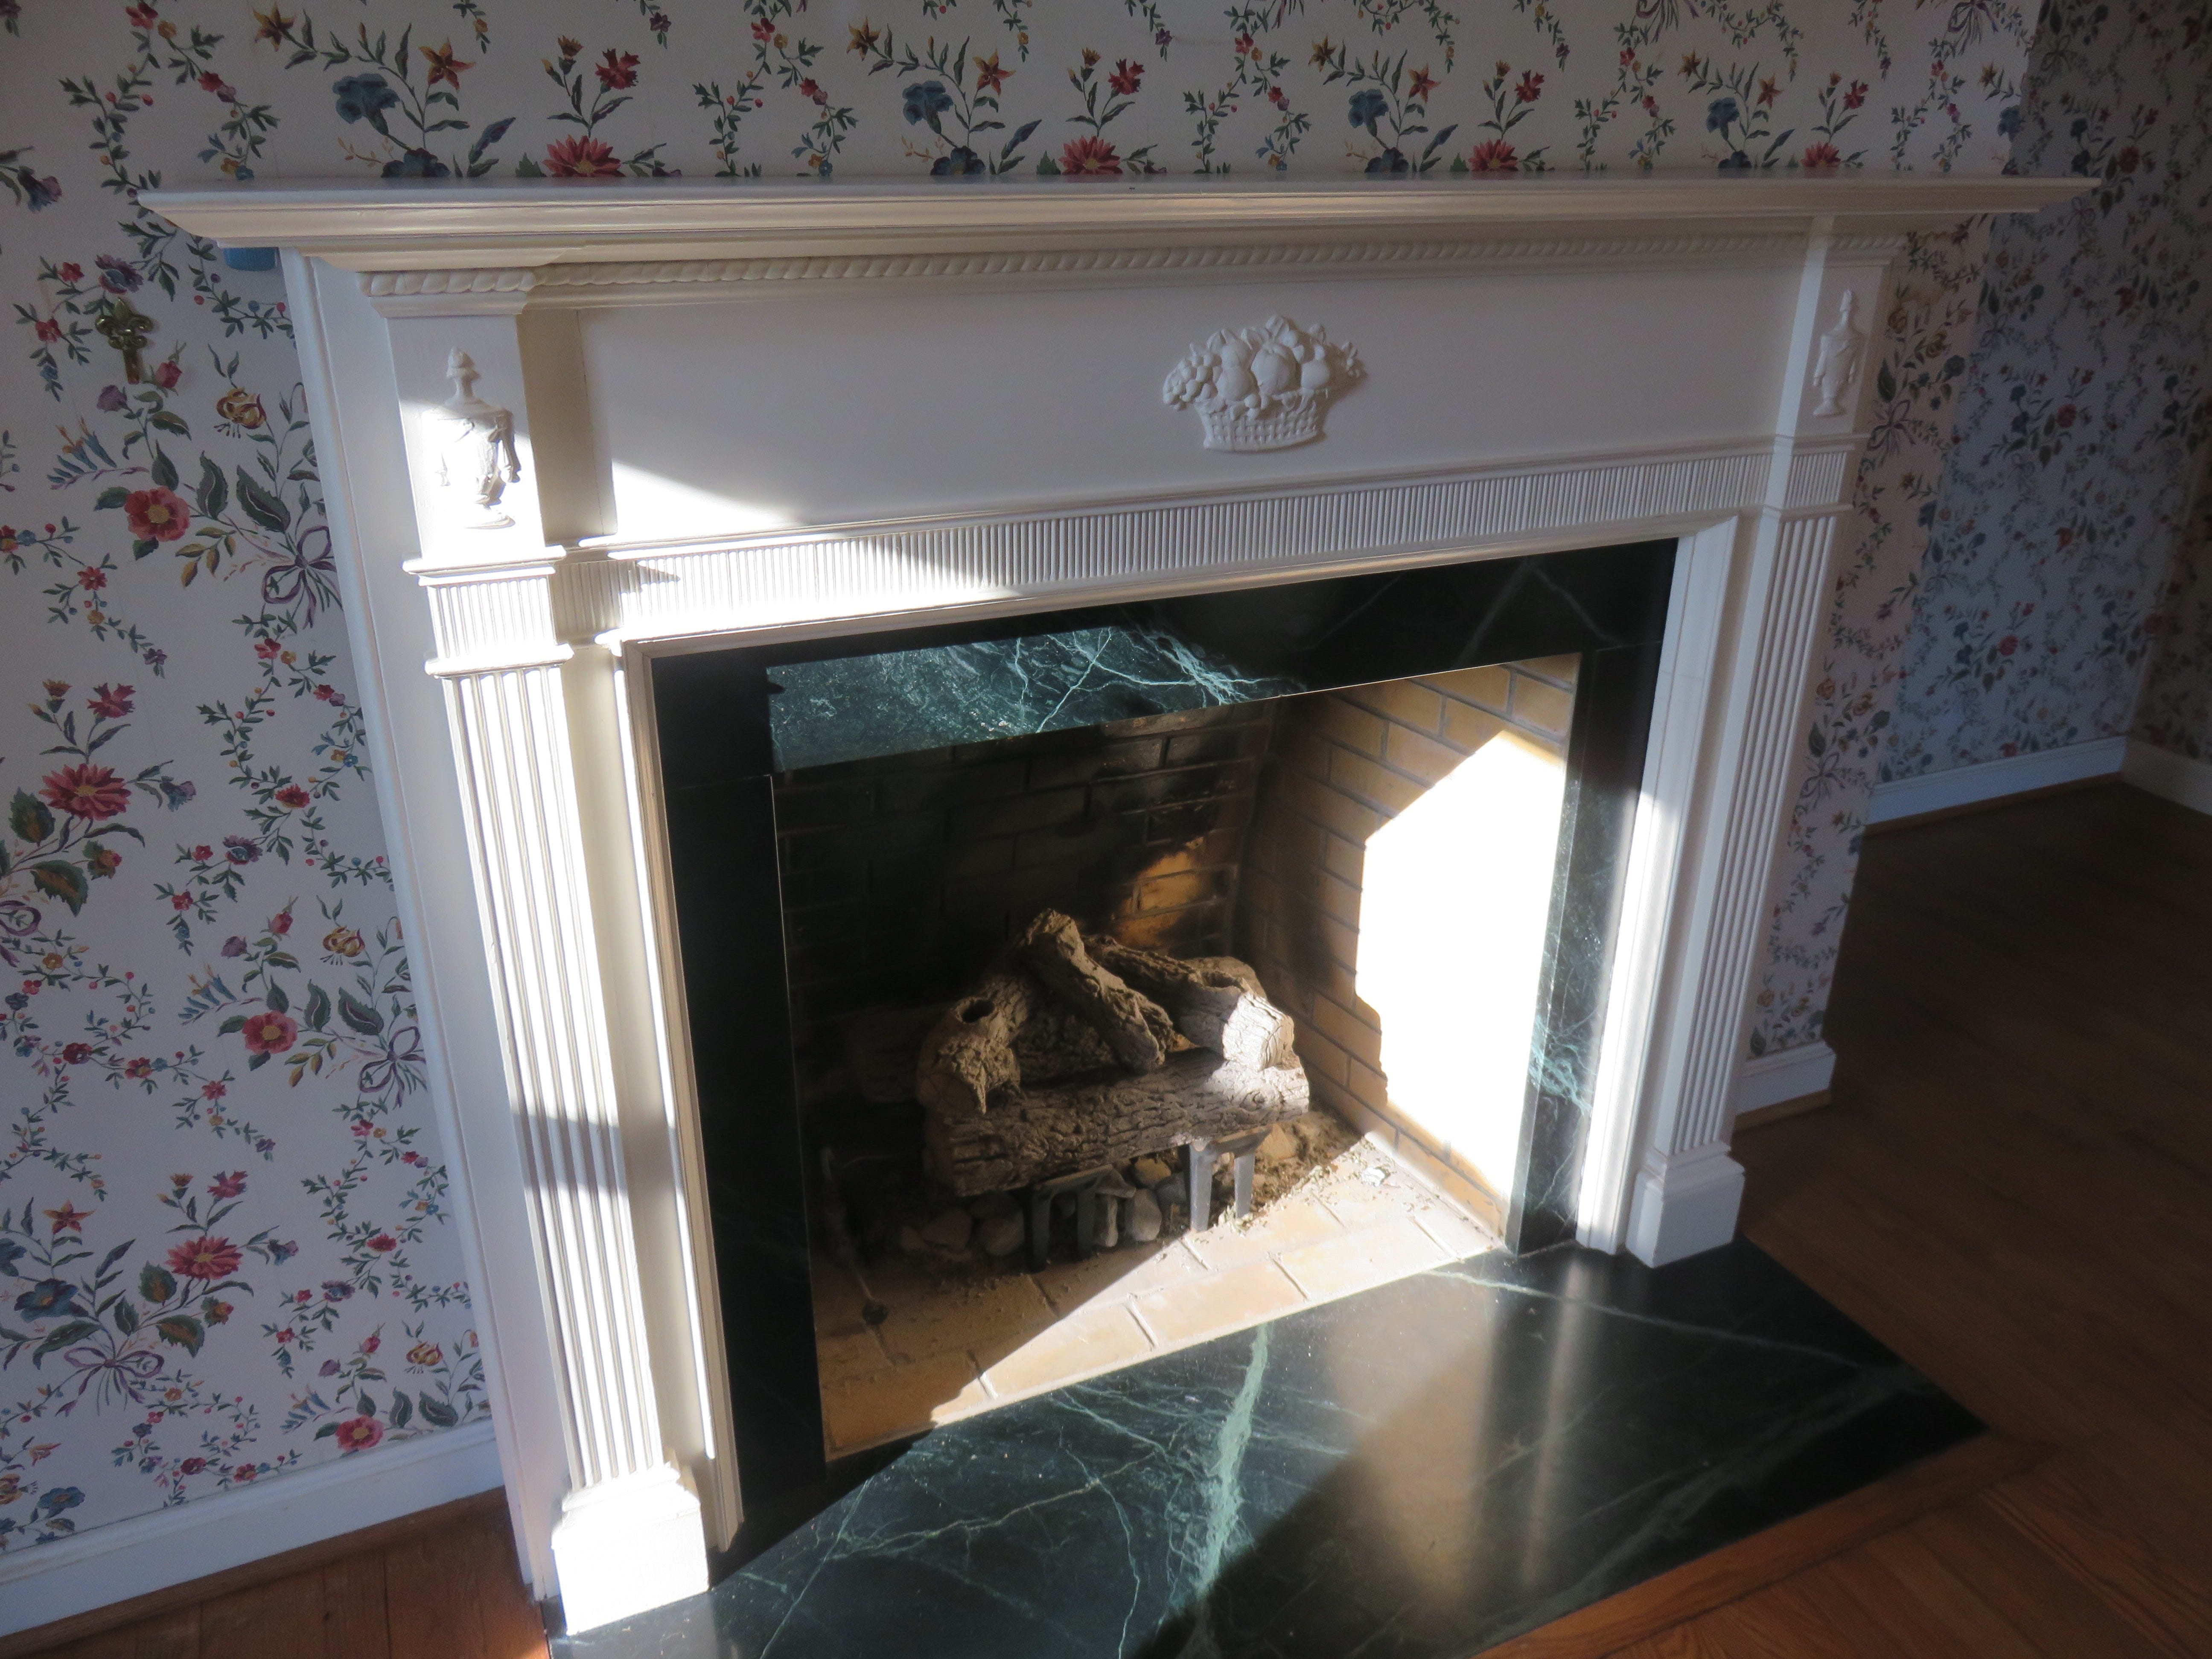 Vintage fireplace mantel taken from former family home by UT campus.